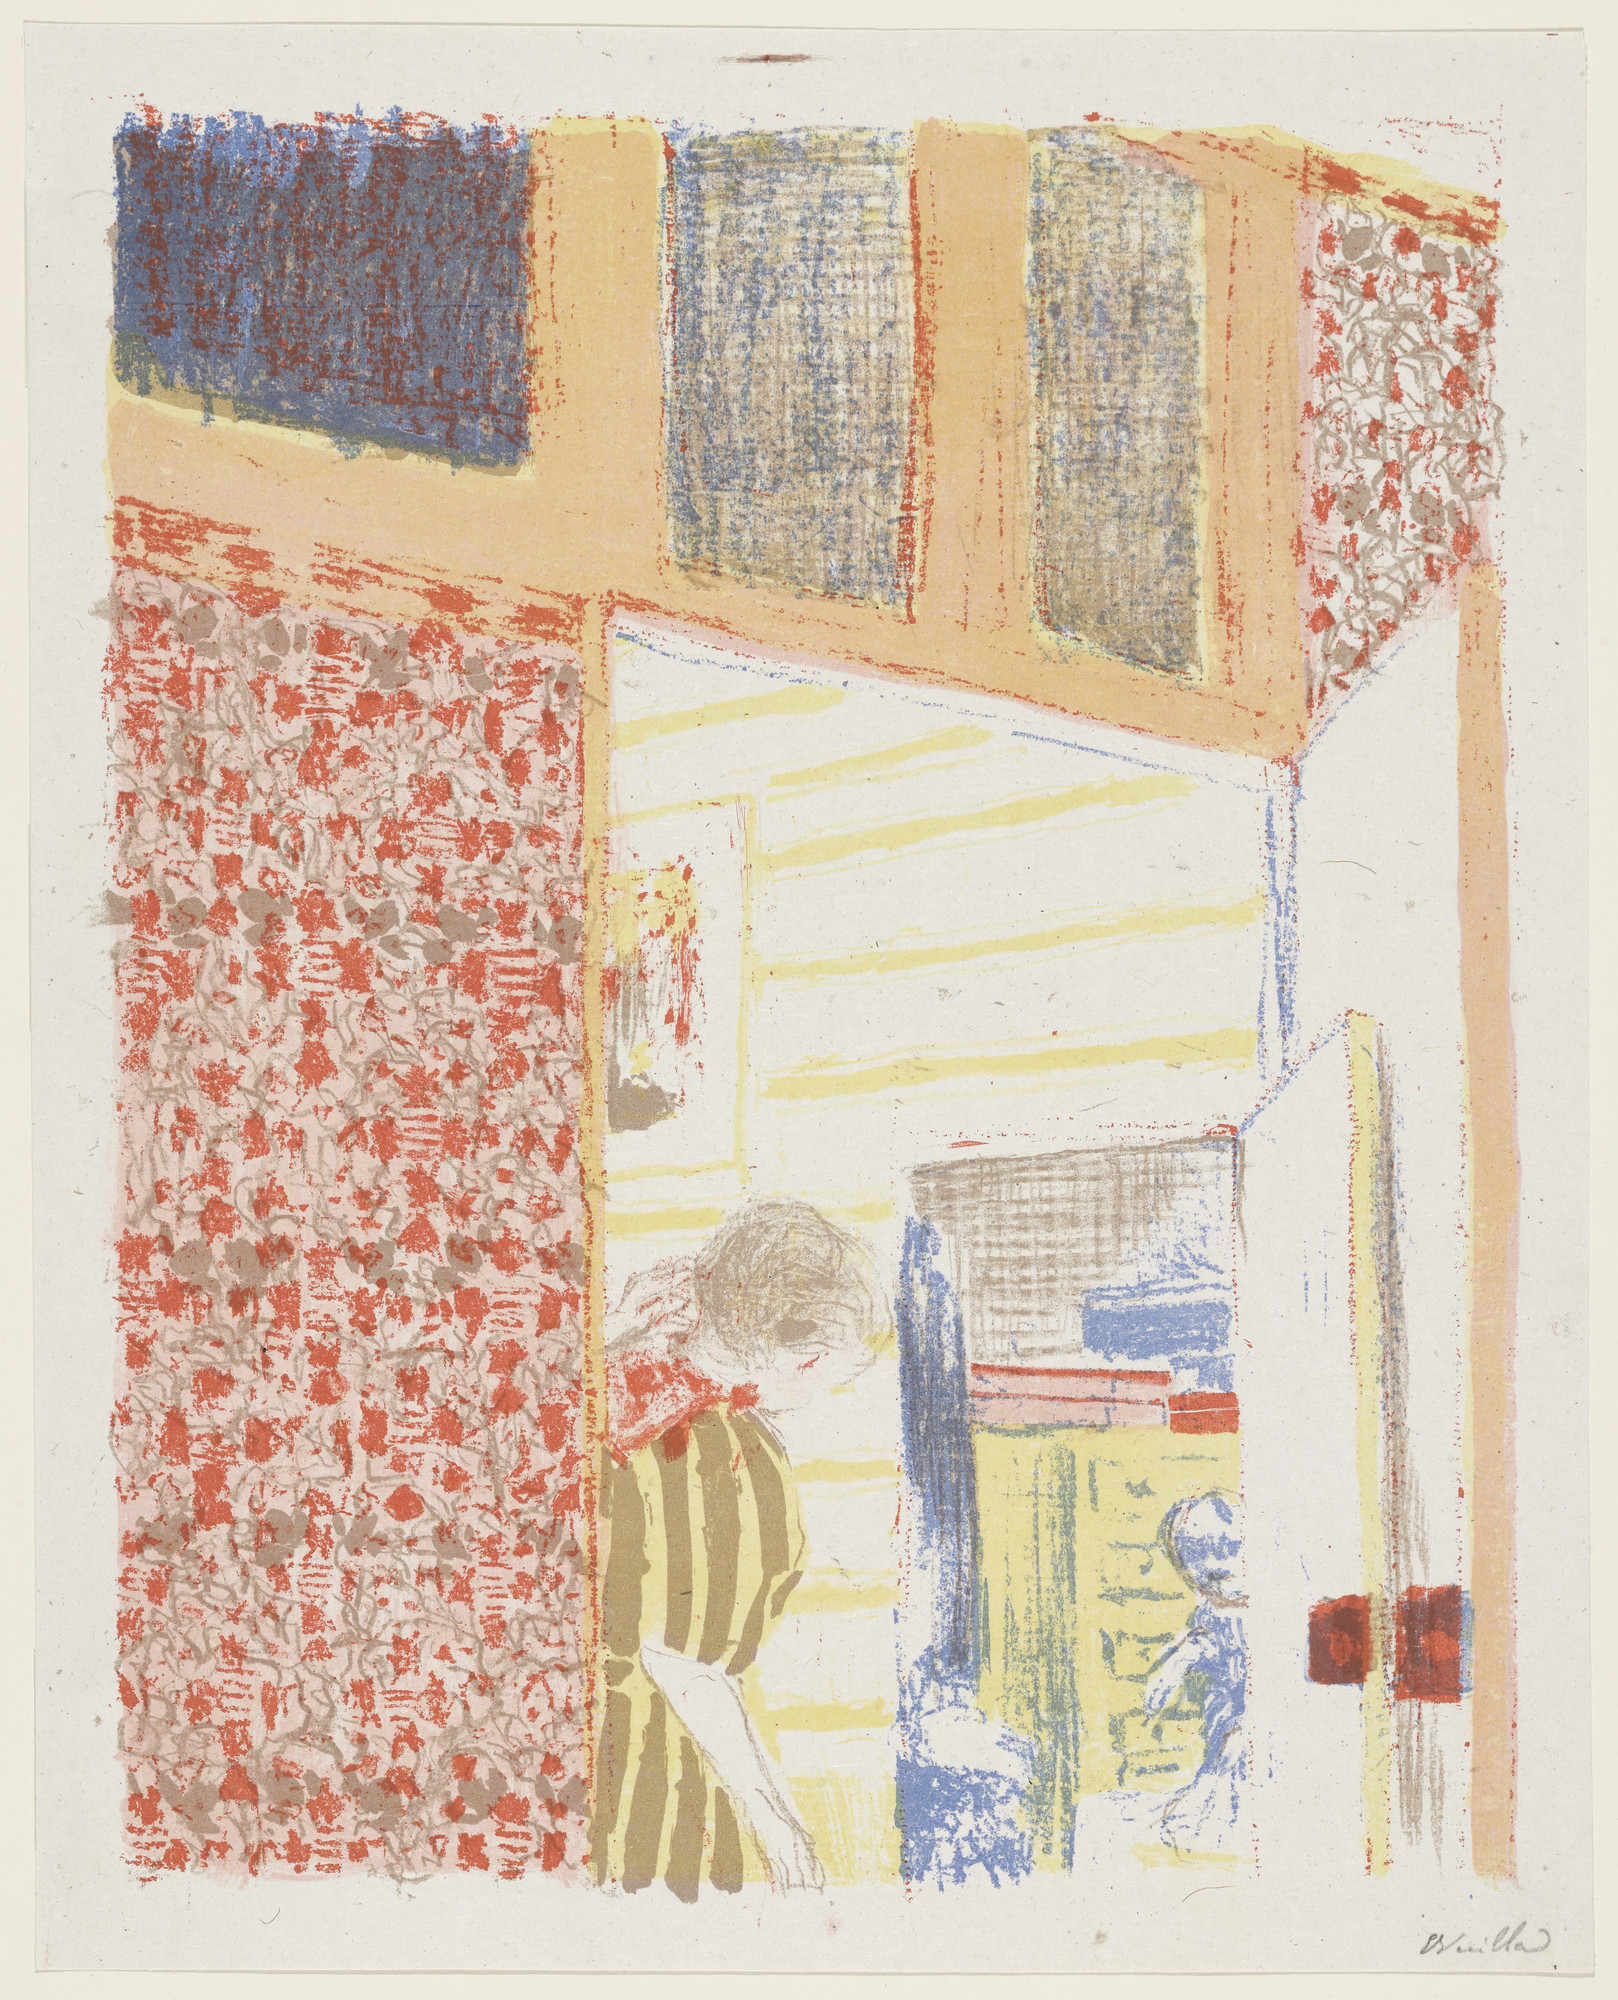 Édouard Vuillard. Interior with Pink Wallpaper III (Intérieur aux tentures roses III) from Landscapes and Interiors (Paysages et intérieurs). 1899